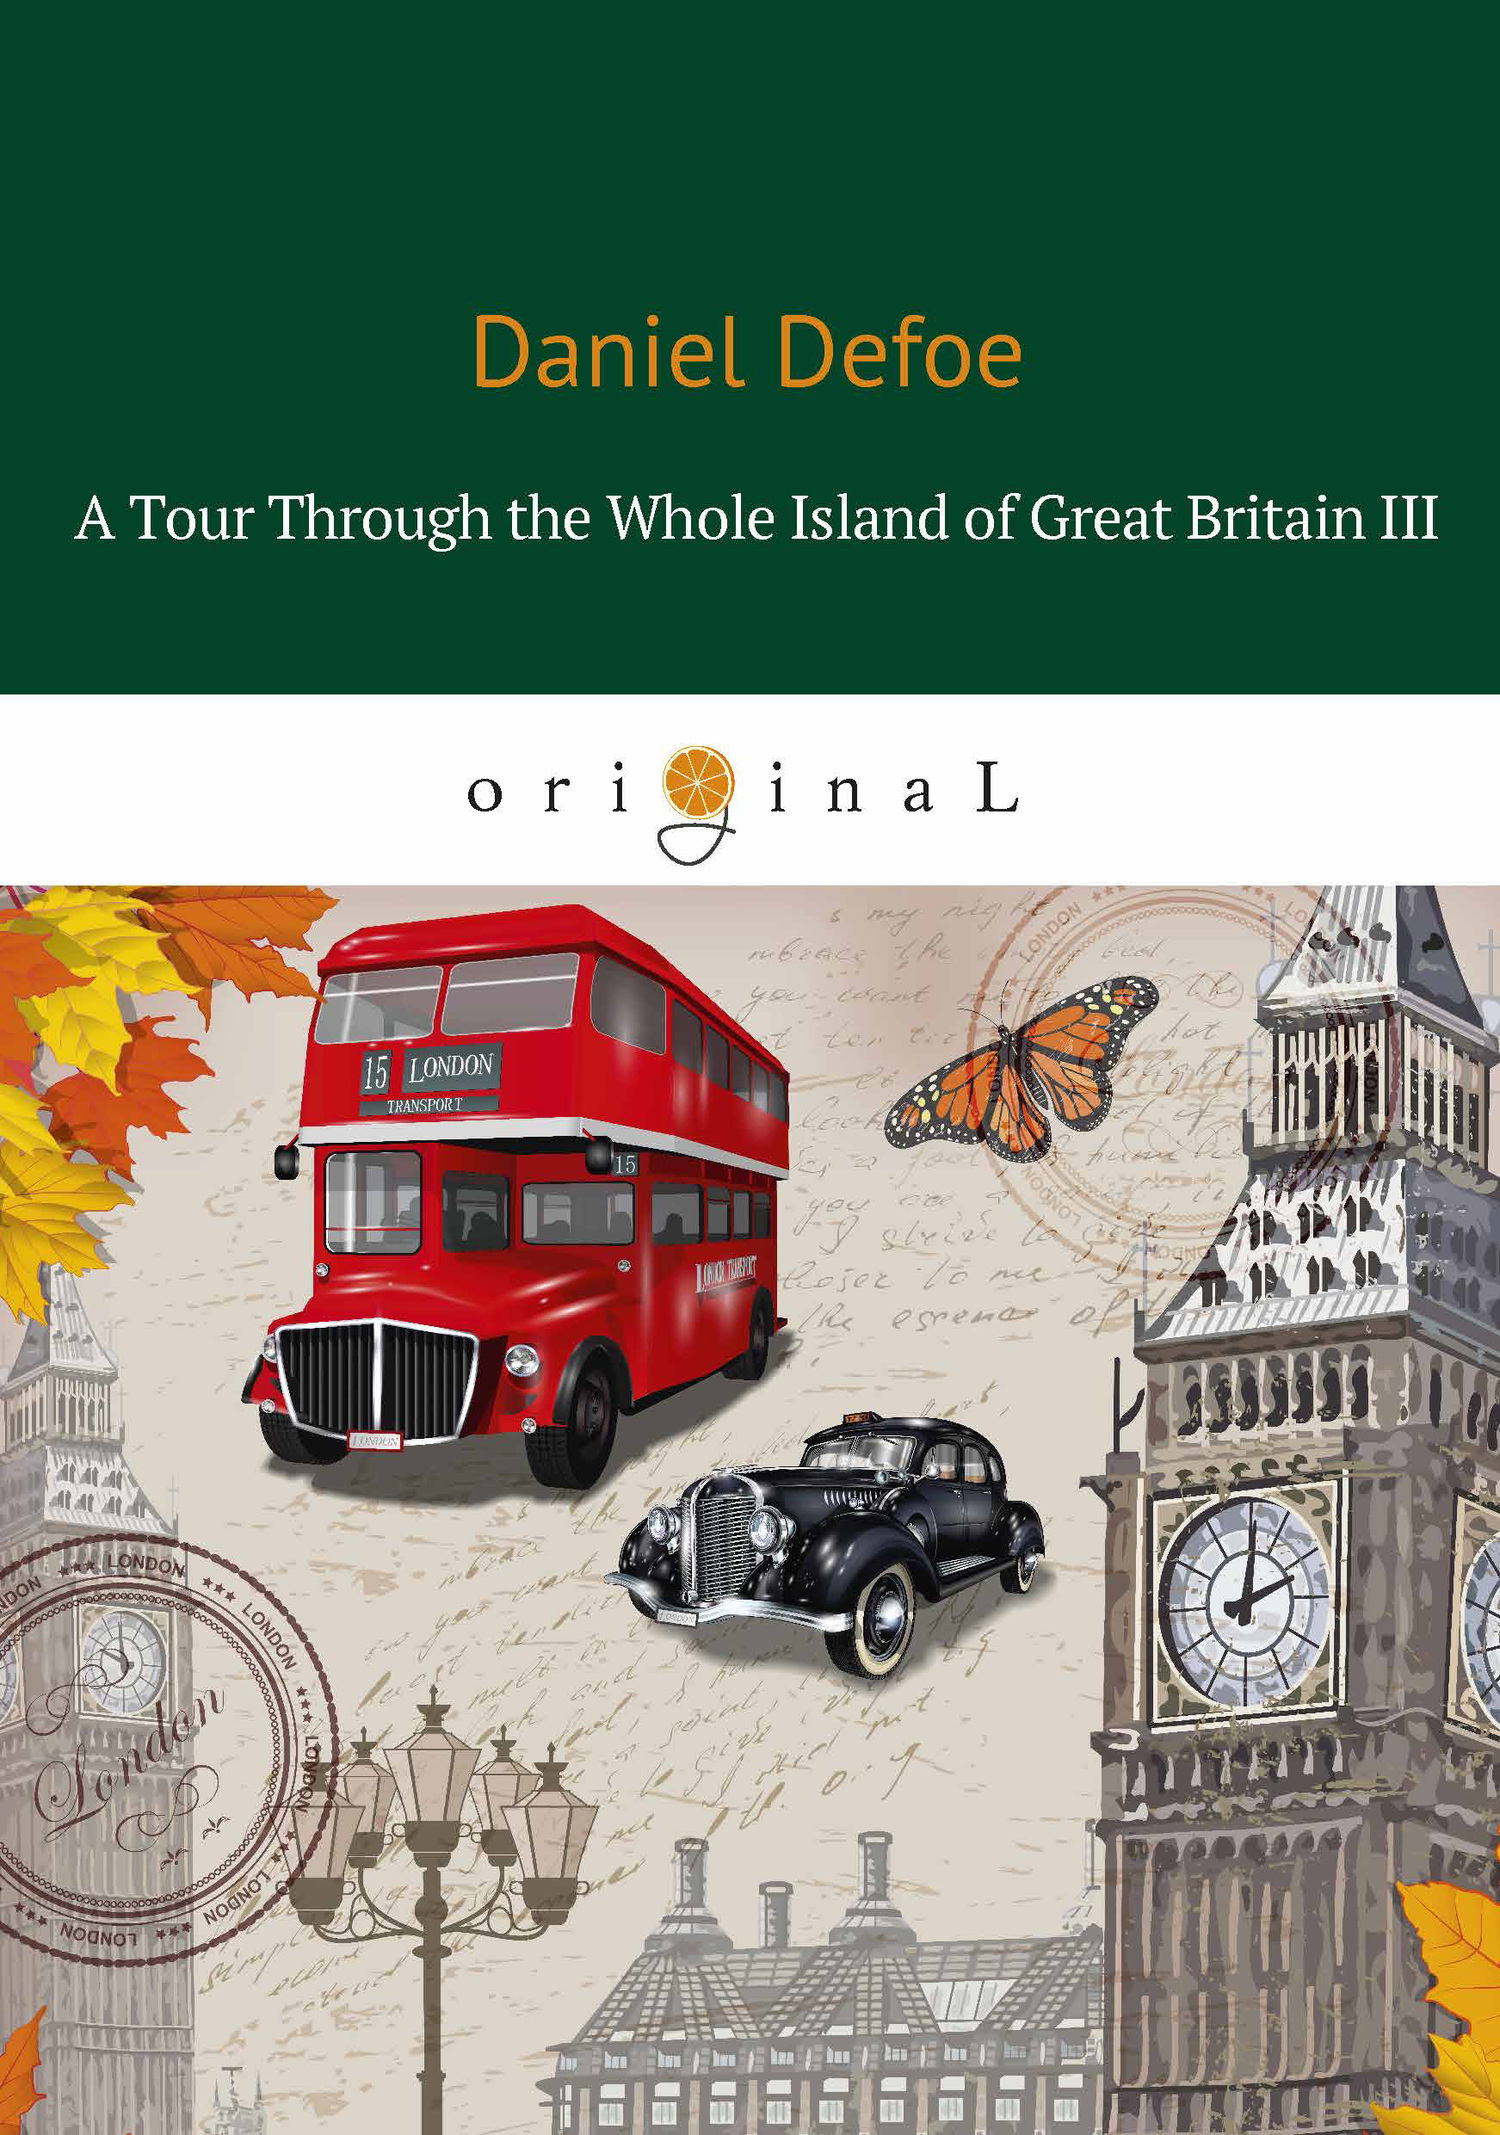 Даниэль Дефо A Tour Through the Whole Island of Great Britain III ISBN: 978-5-521-06818-0 doug lemov the writing revolution a guide to advancing thinking through writing in all subjects and grades isbn 9781119364948